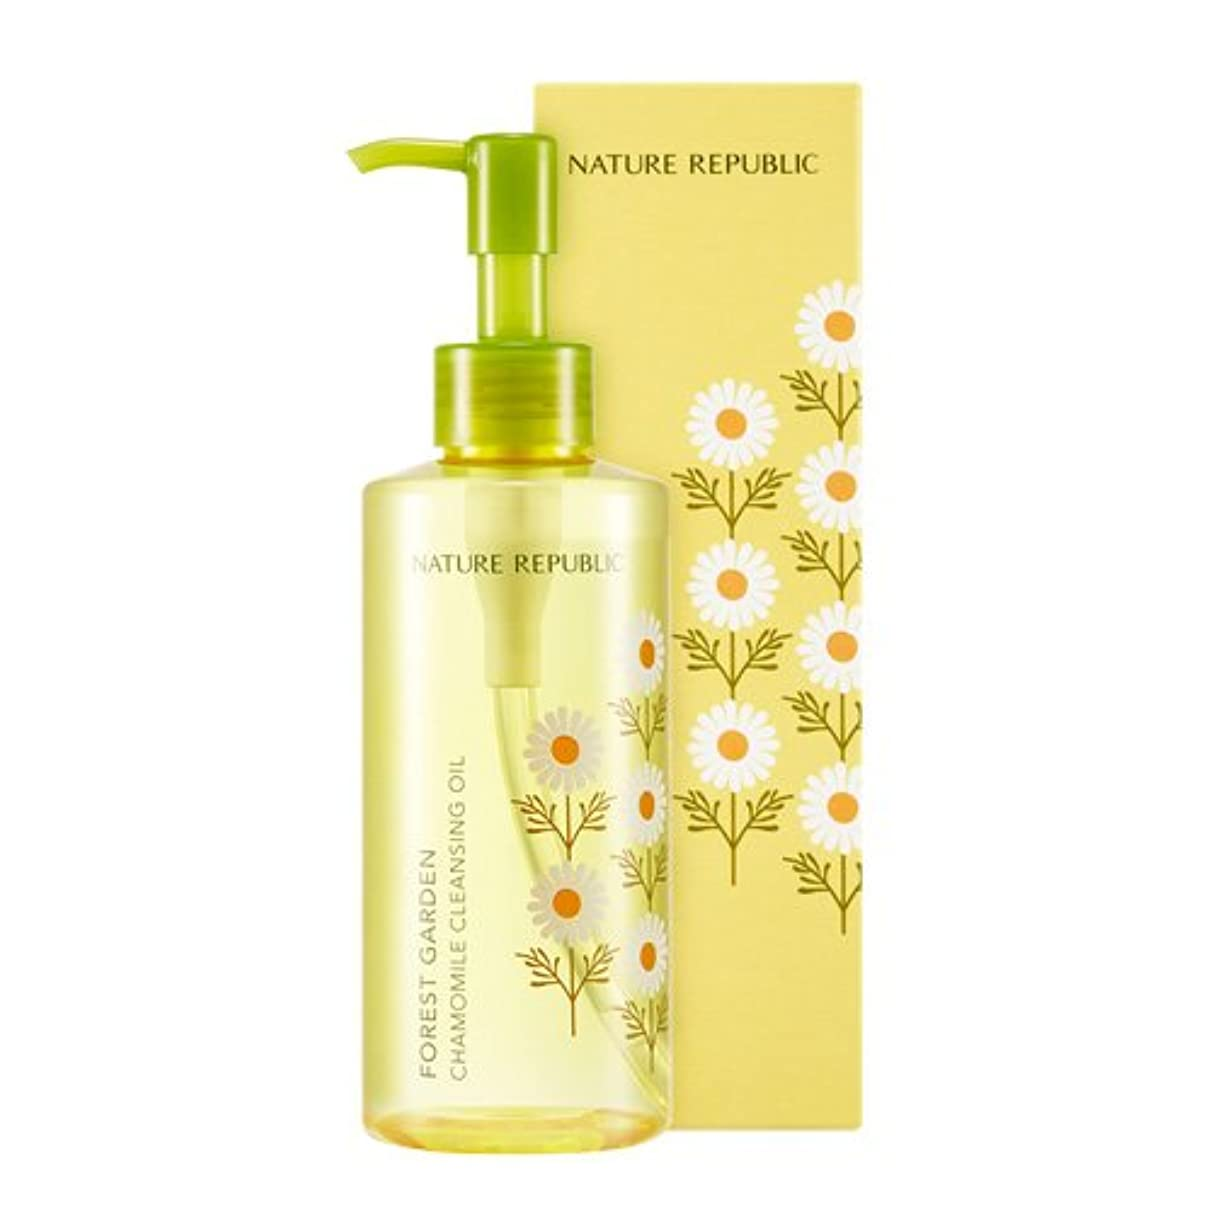 [Nature Republic] ポルセットガーデンカモミールクレンジングオイル Forest Garden Chamomile Cleansing Oil 200ml [並行輸入品]